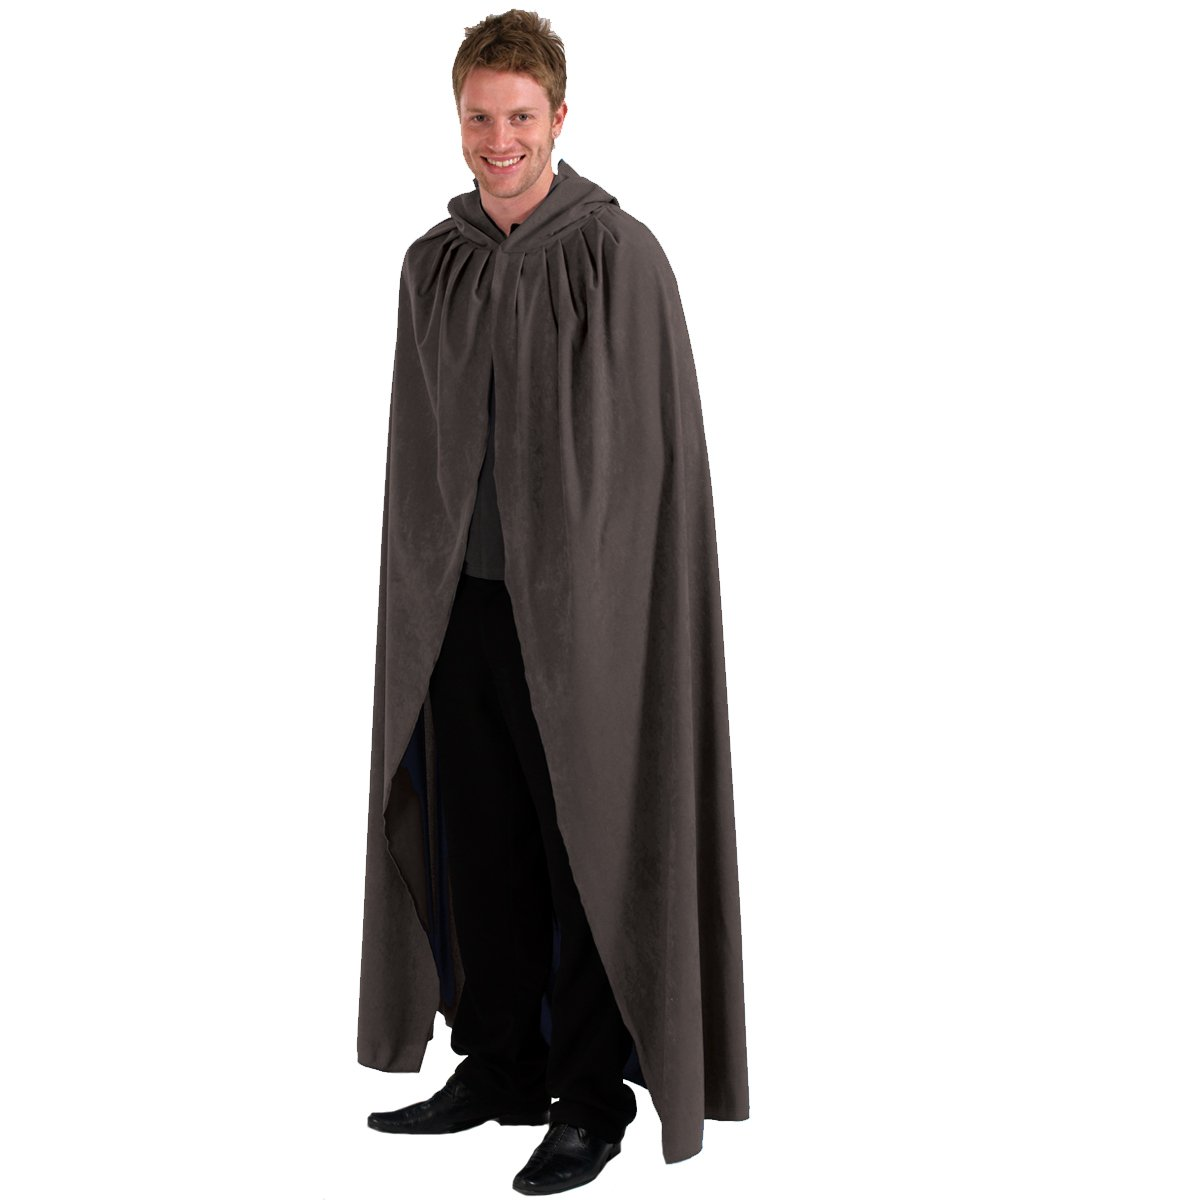 charlie crow grey cloak cape with hood for adults large